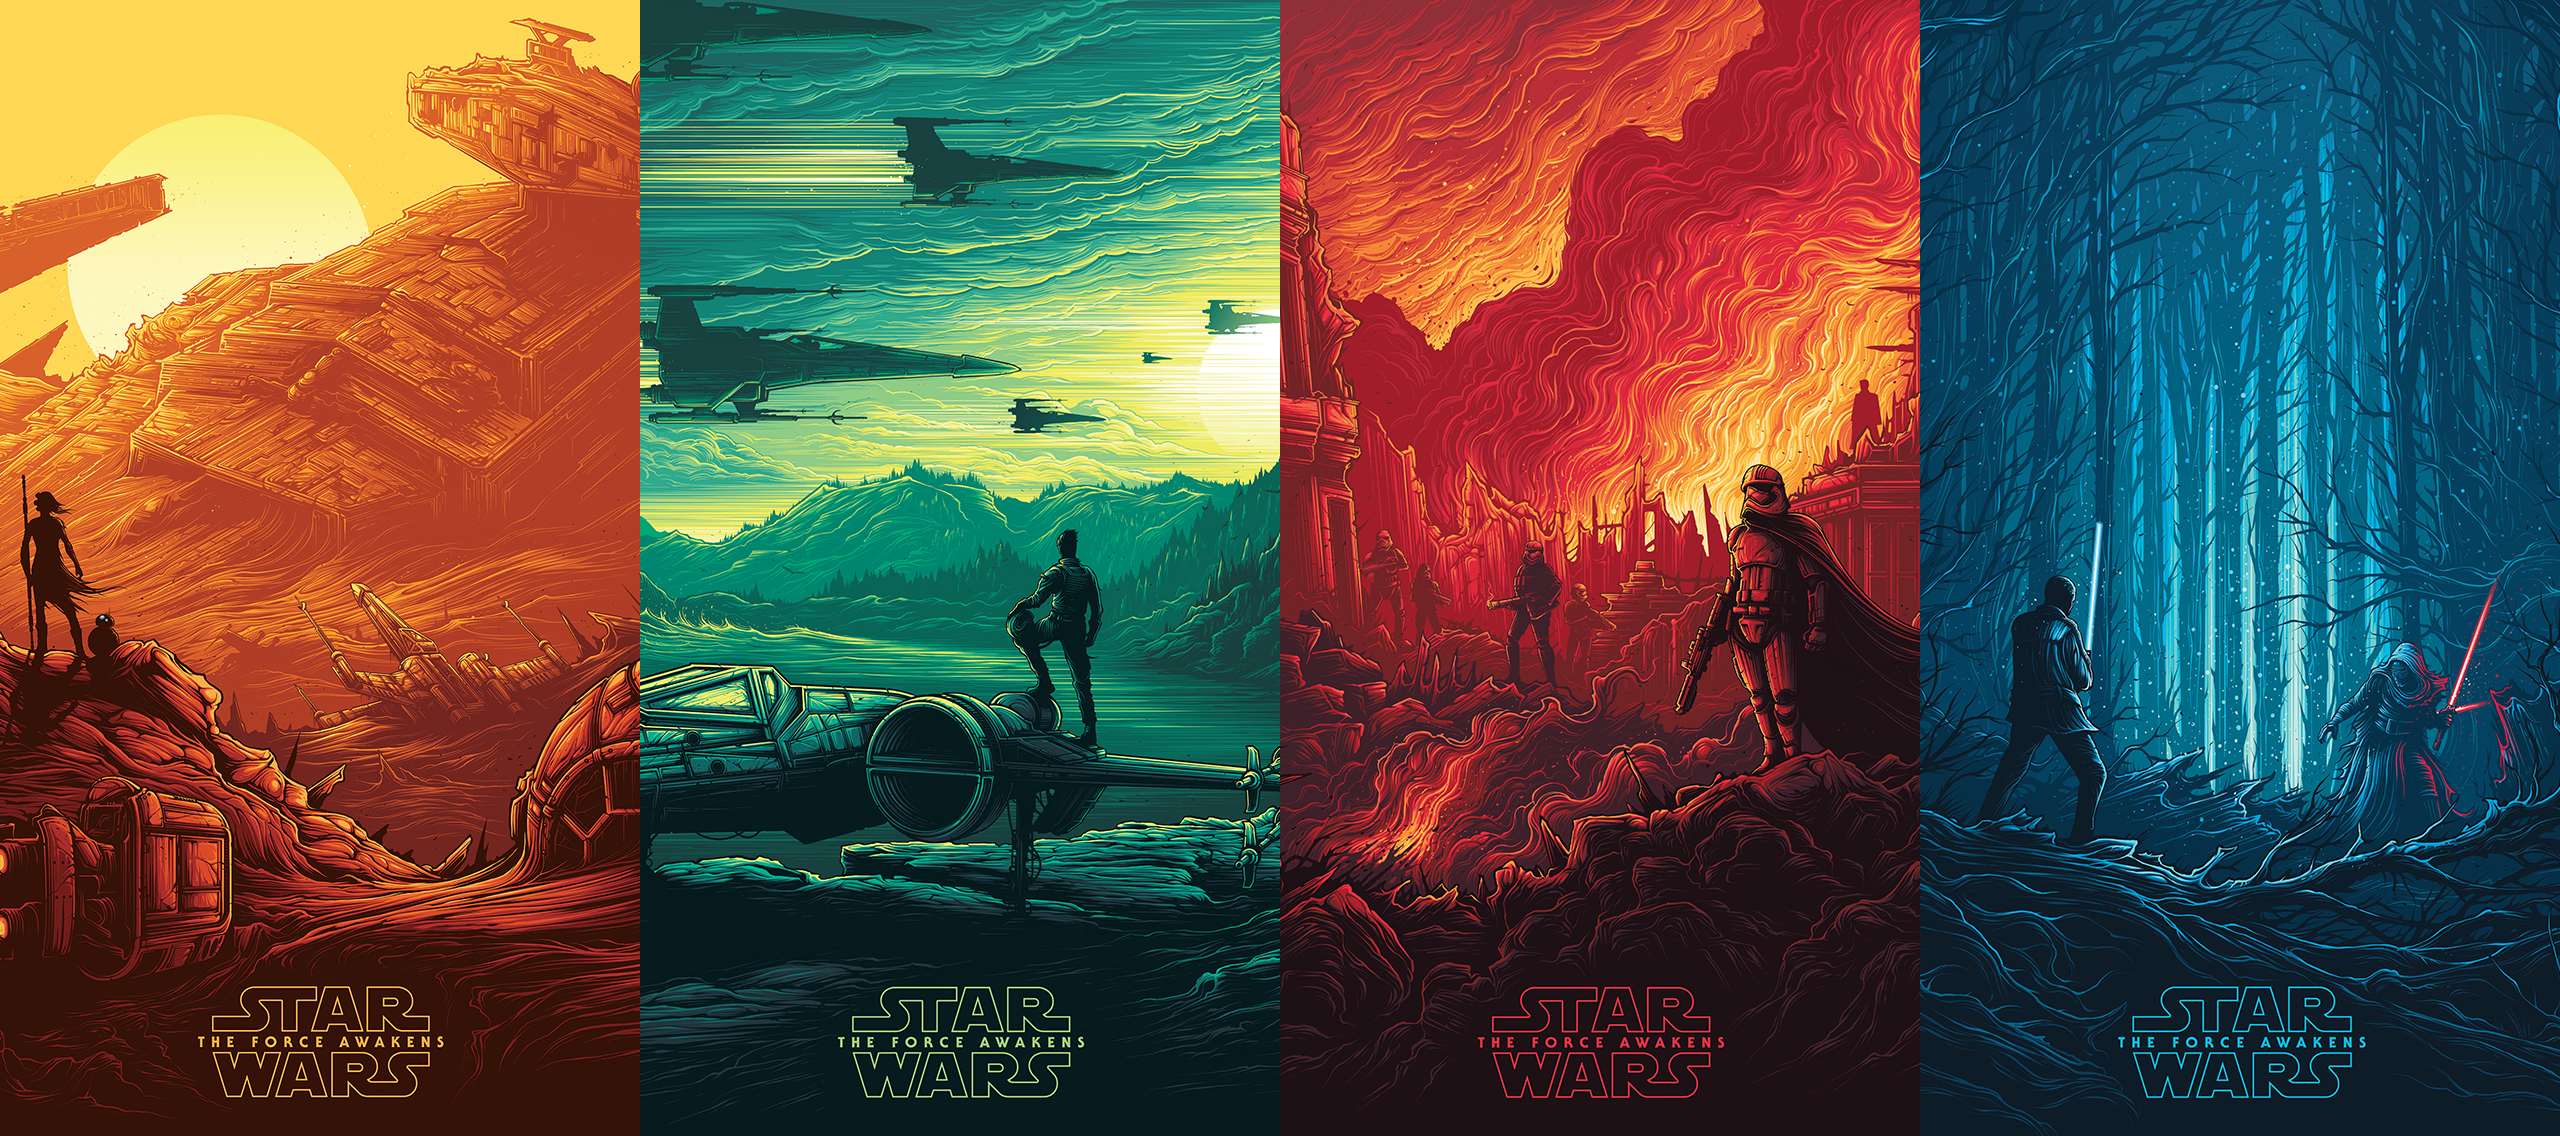 By HalfLucan Star Wars IMAX Posters IOS Updated